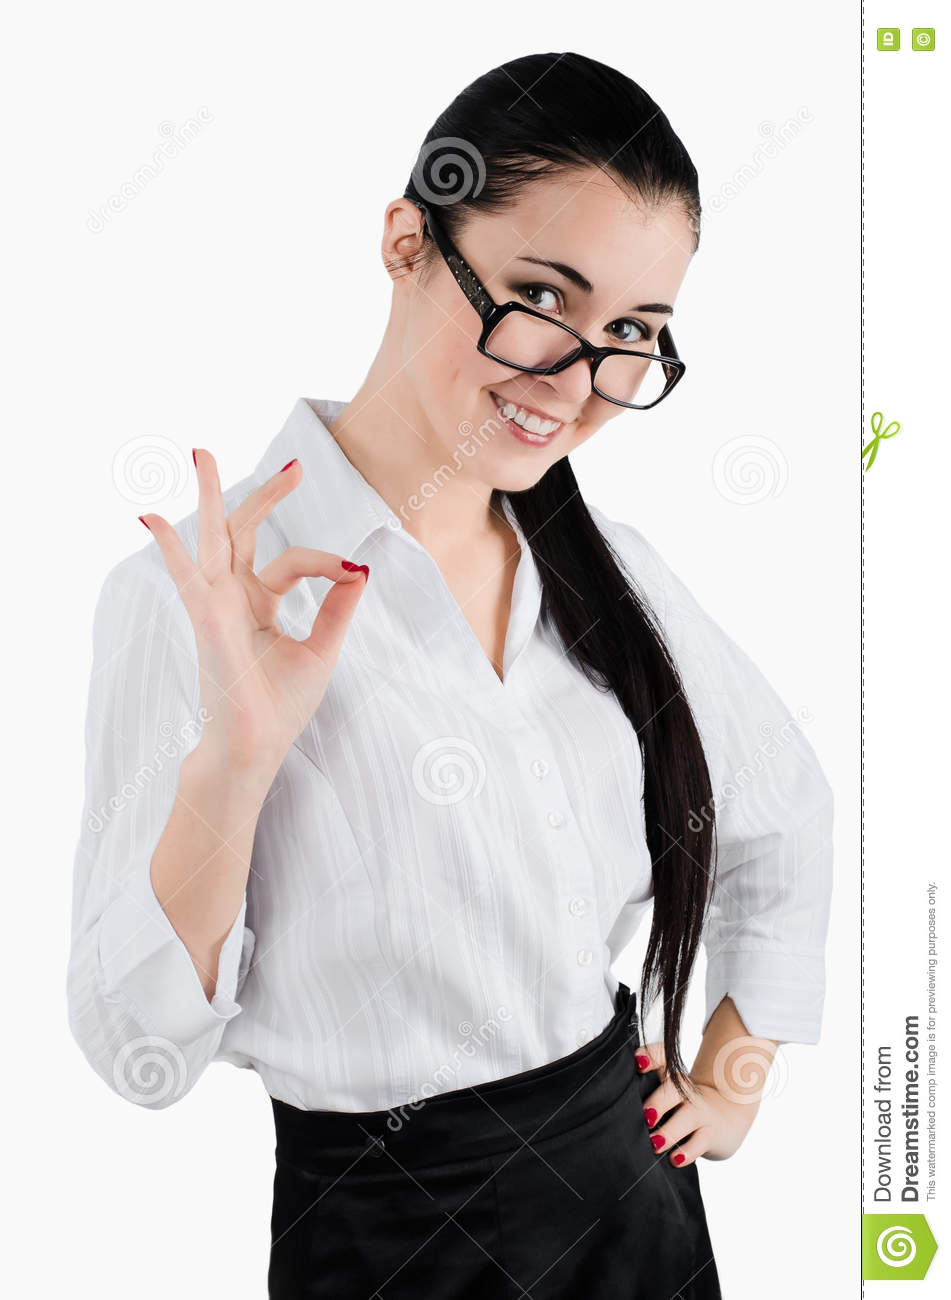 Perfect - business woman showing OK hand sign smiling happy. White background. Studio shot